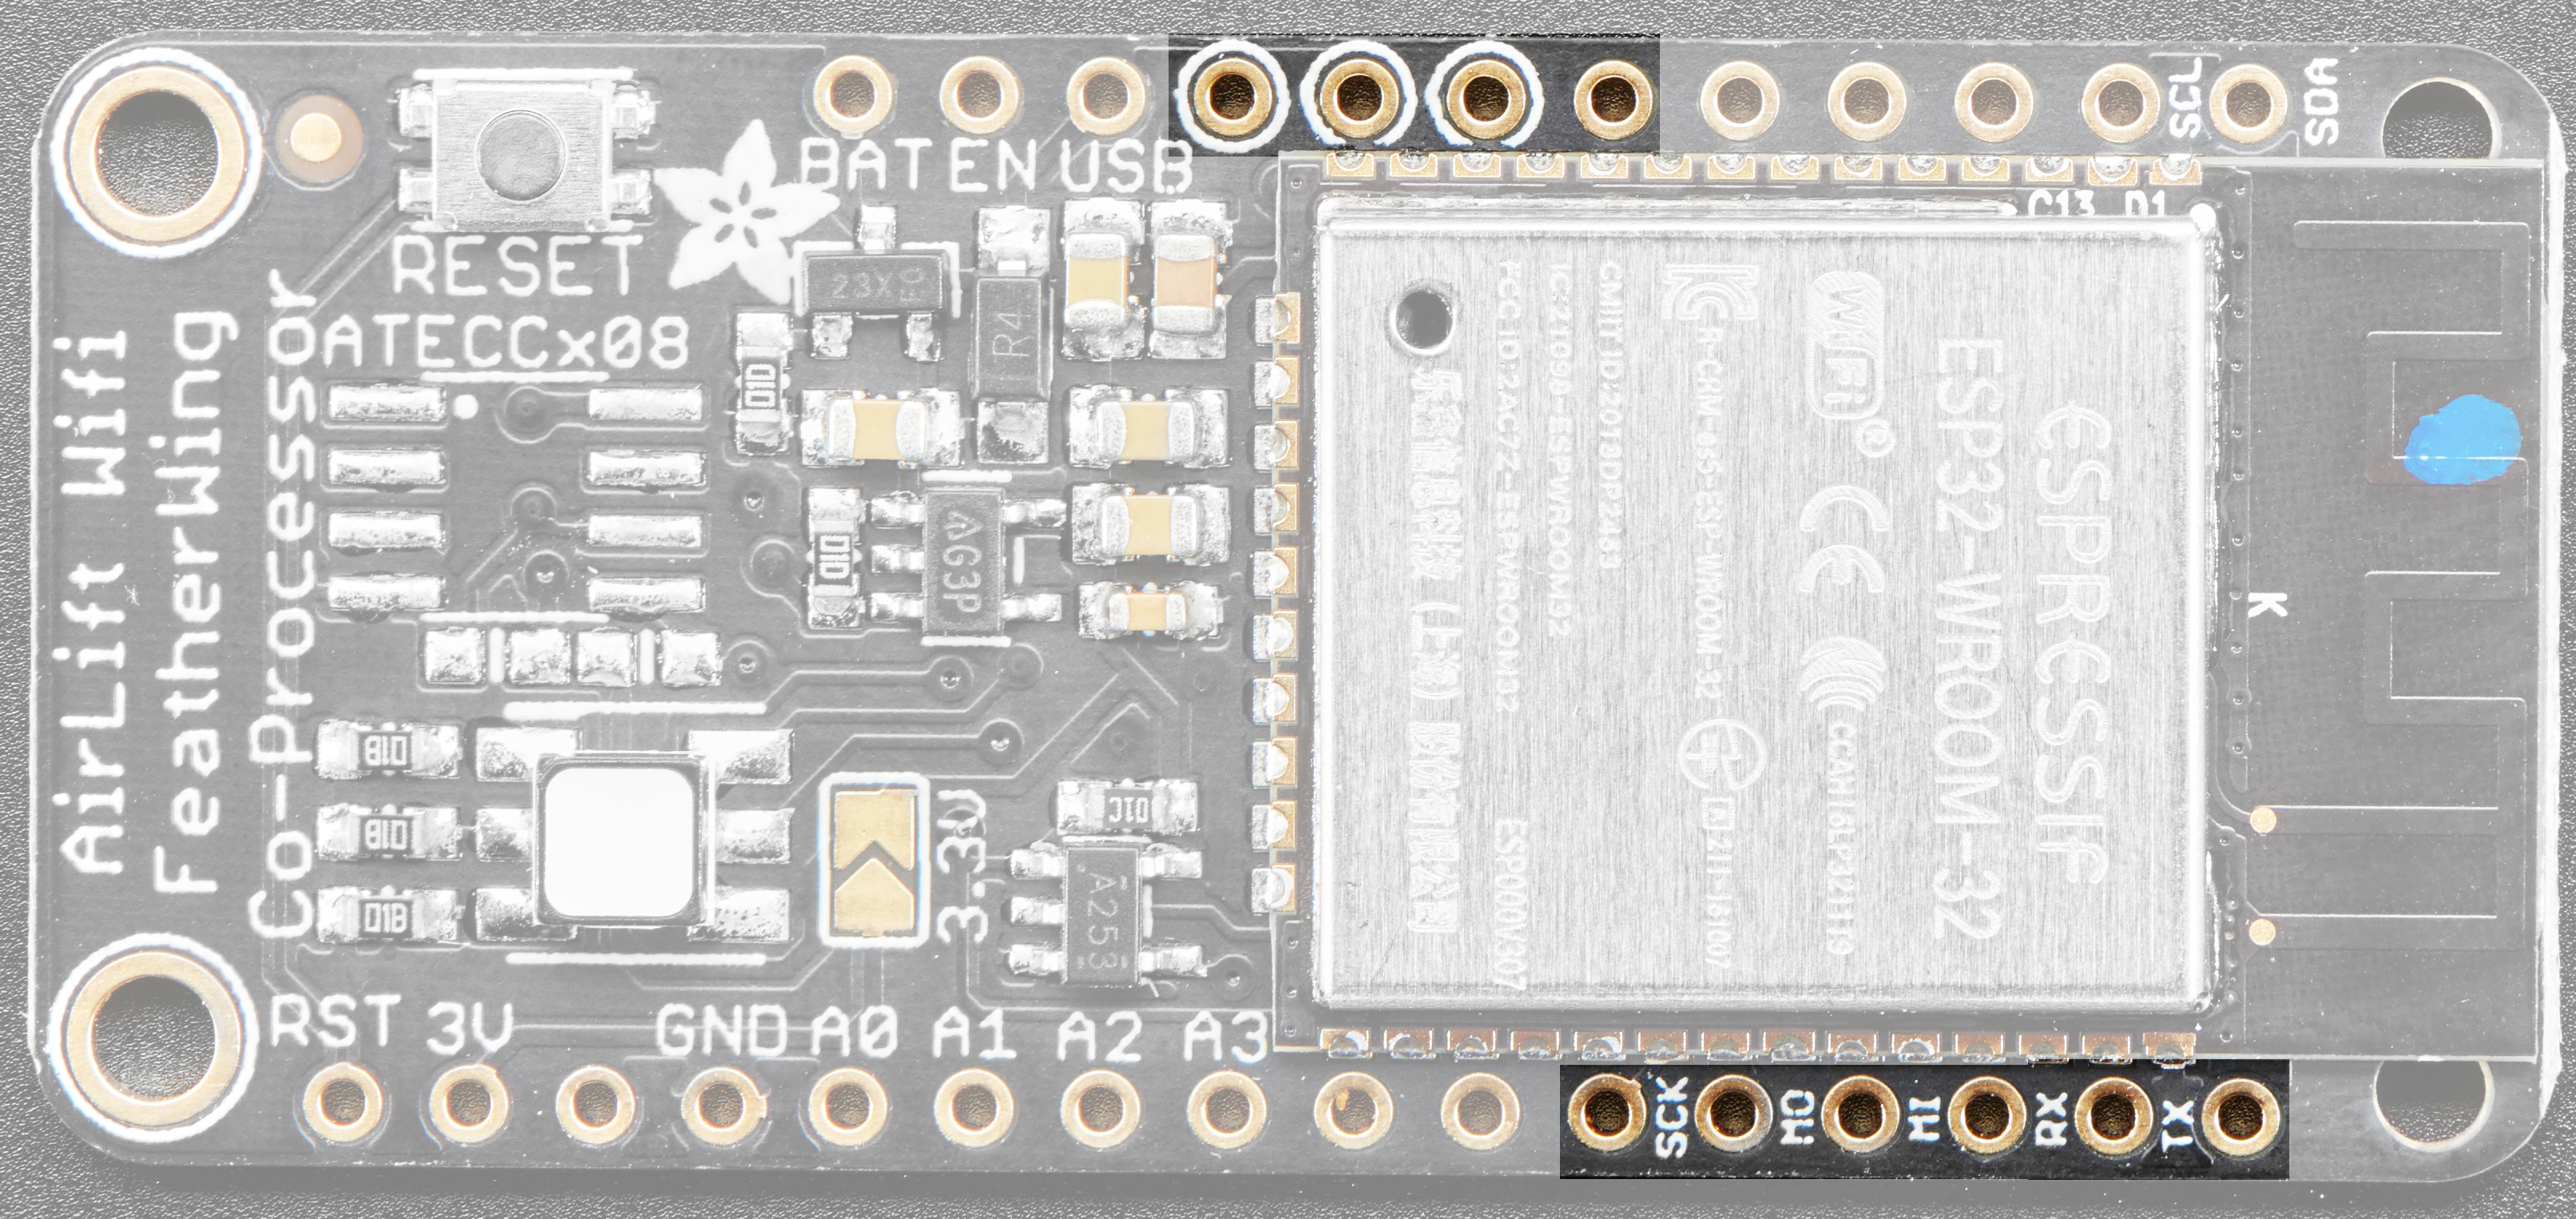 adafruit_products_4264_spi_and_control_pins.png